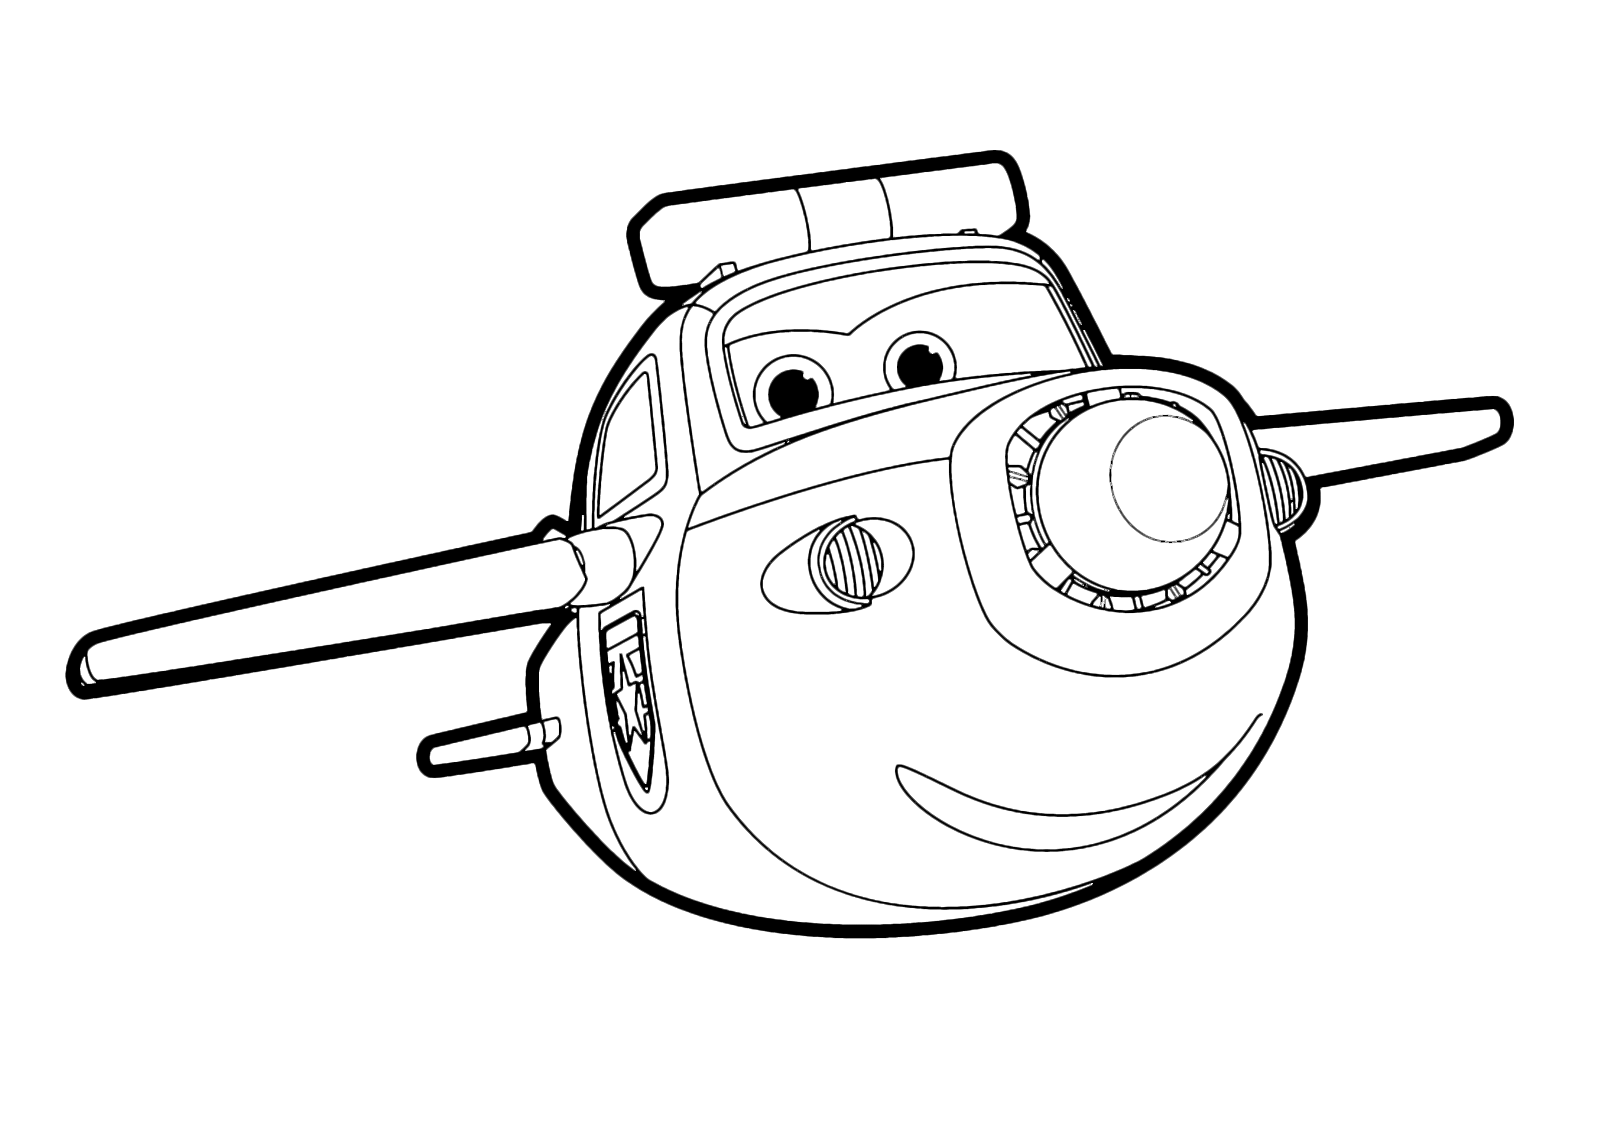 Super wings paul vola sull 39 aeroporto for Disegni da colorare super wings